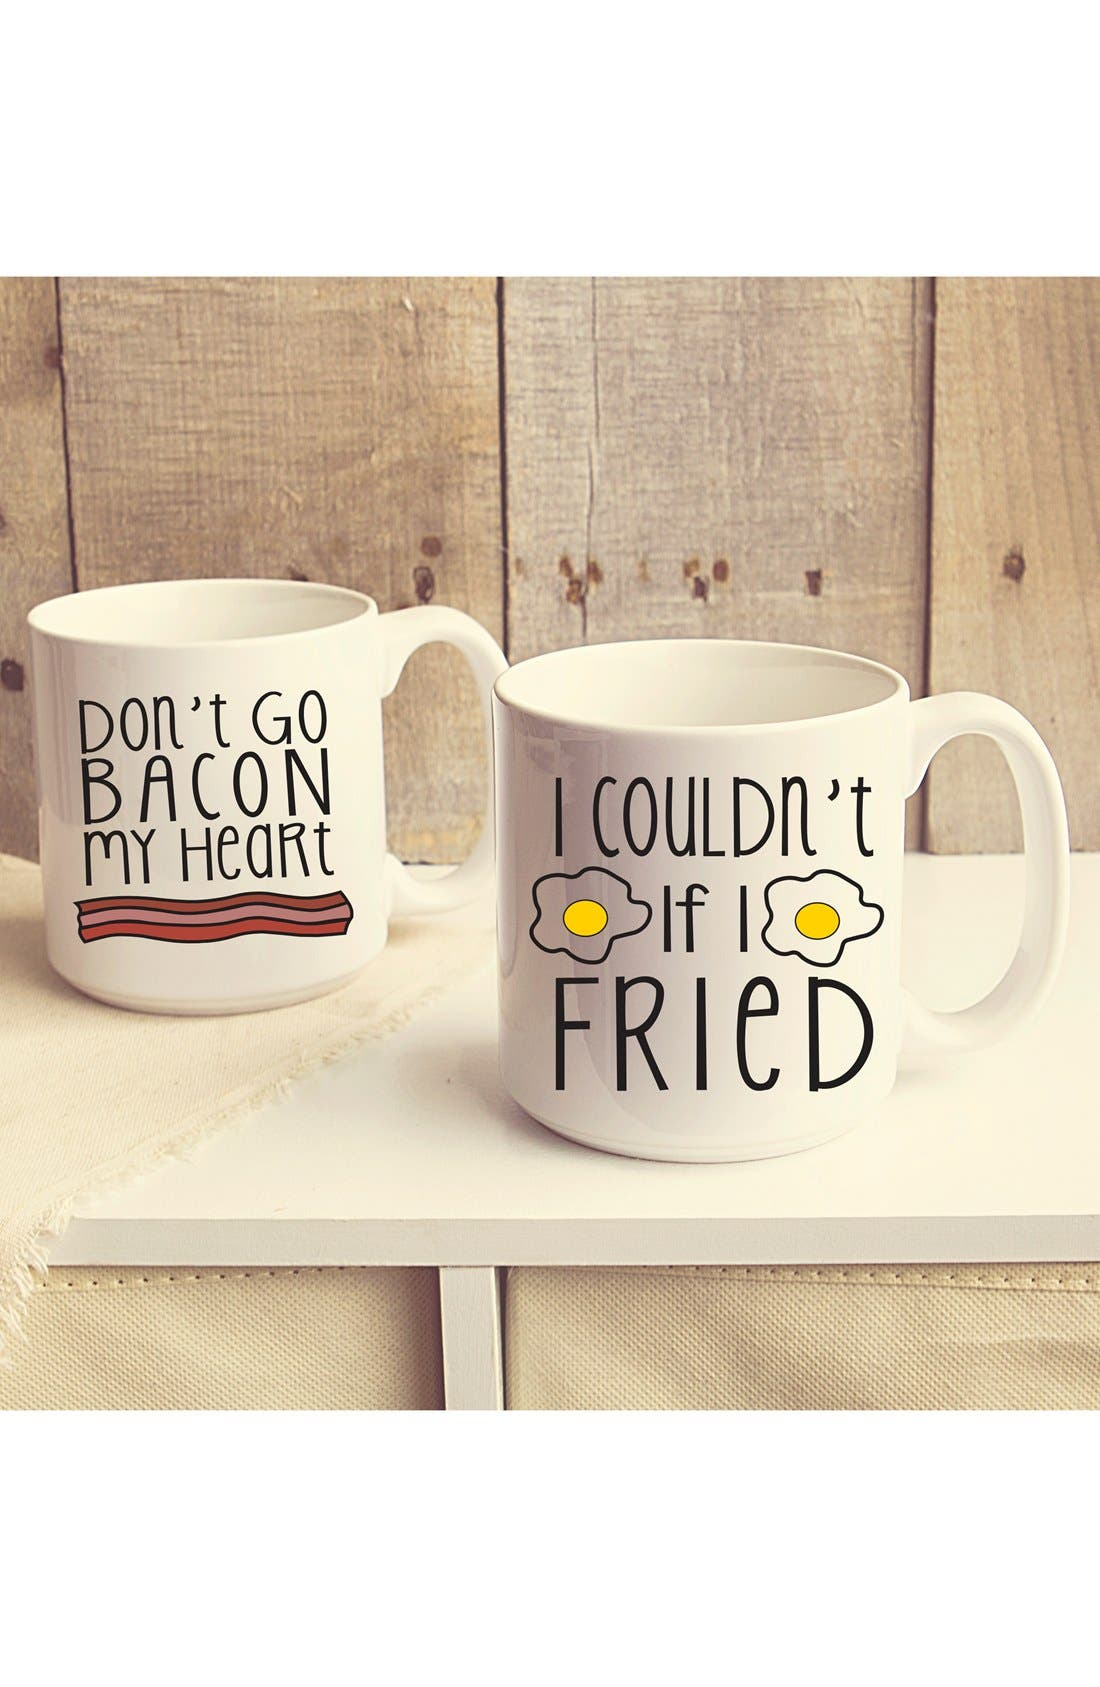 Main Image - Cathy's Concepts 'Bacon & Eggs' Ceramic Coffee Mugs (Set of 2)